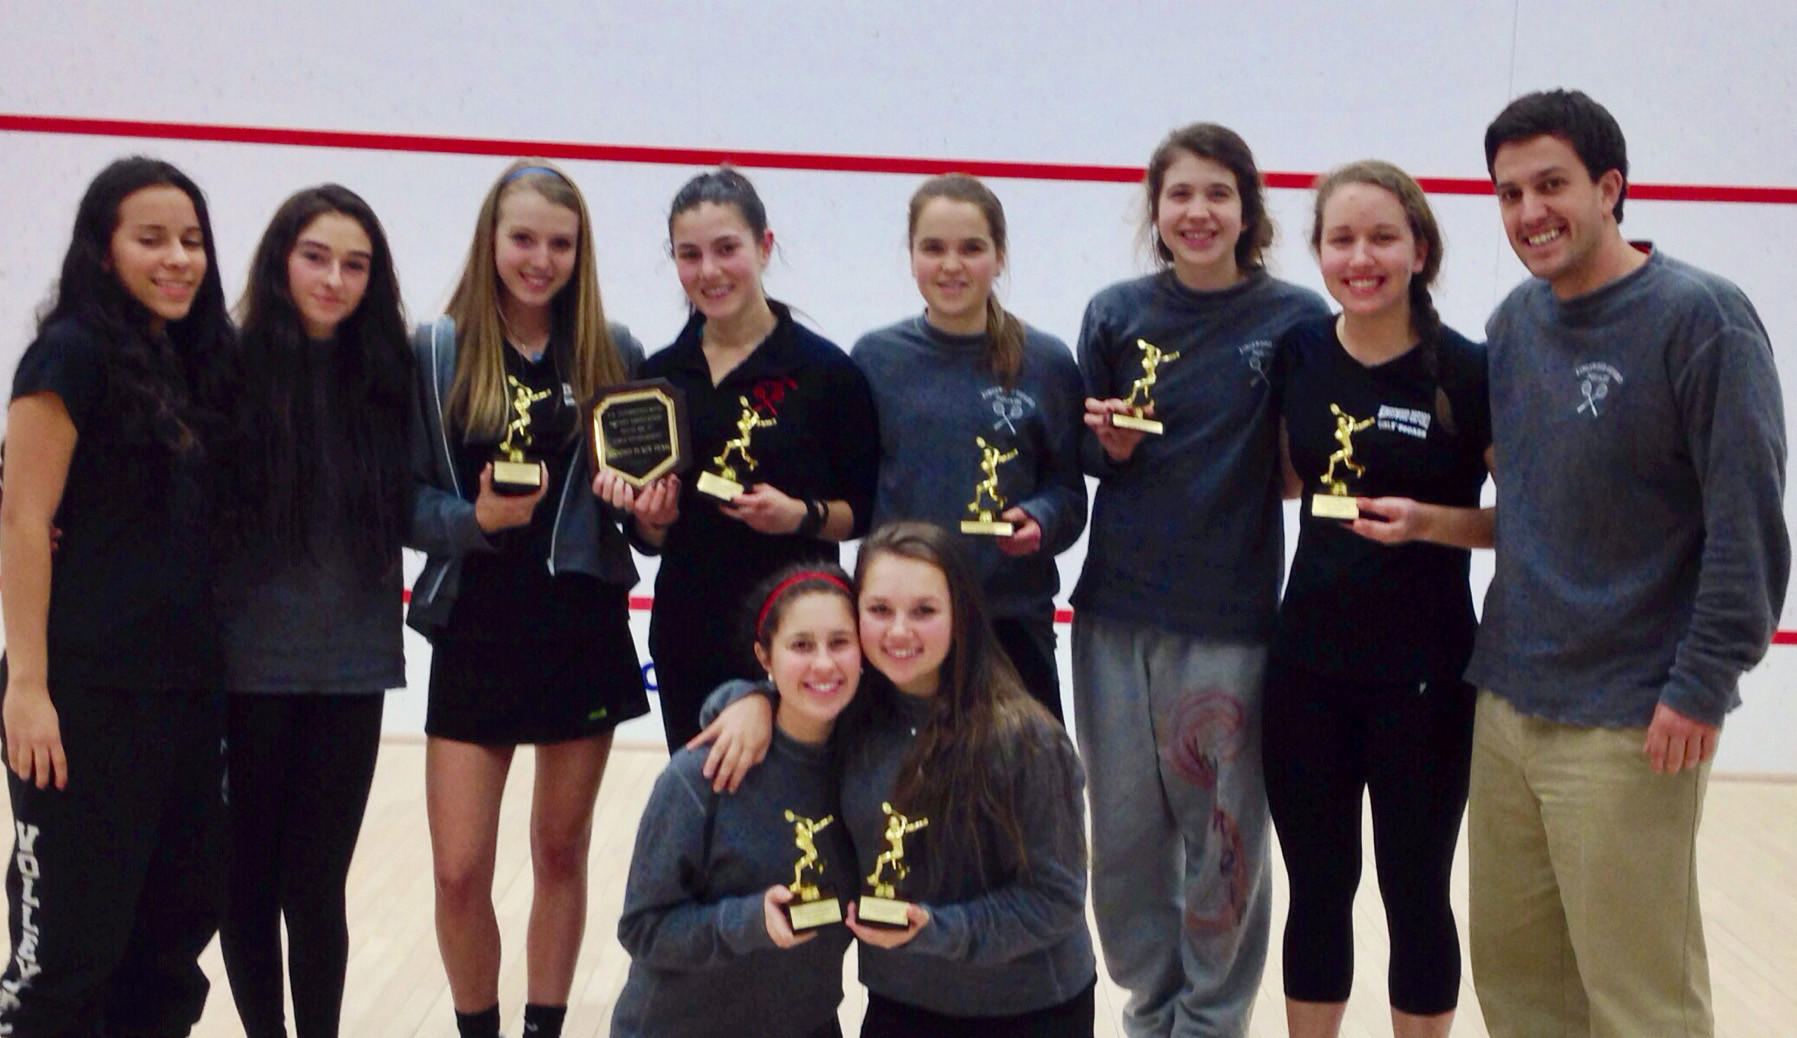 The KO Girls' Varsity Squash team came in 2nd at New Englands, one point behind the winner, and also brought home the peer-chosen Sportsmanship Award.